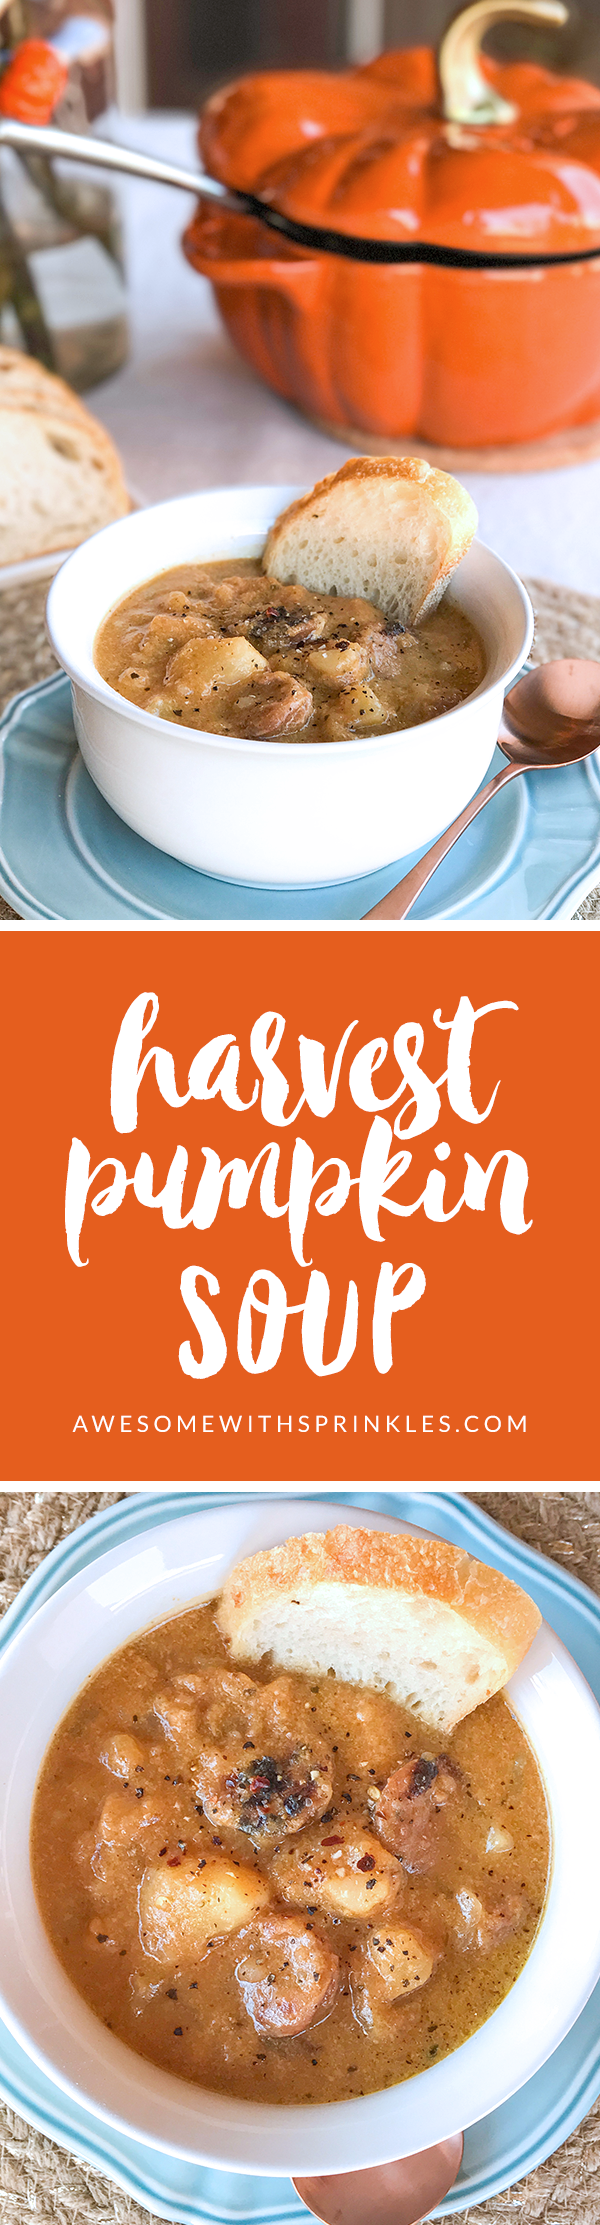 Harvest Pumpkin Soup with Apple,Potato and Sausage | Awesome with Sprinkles